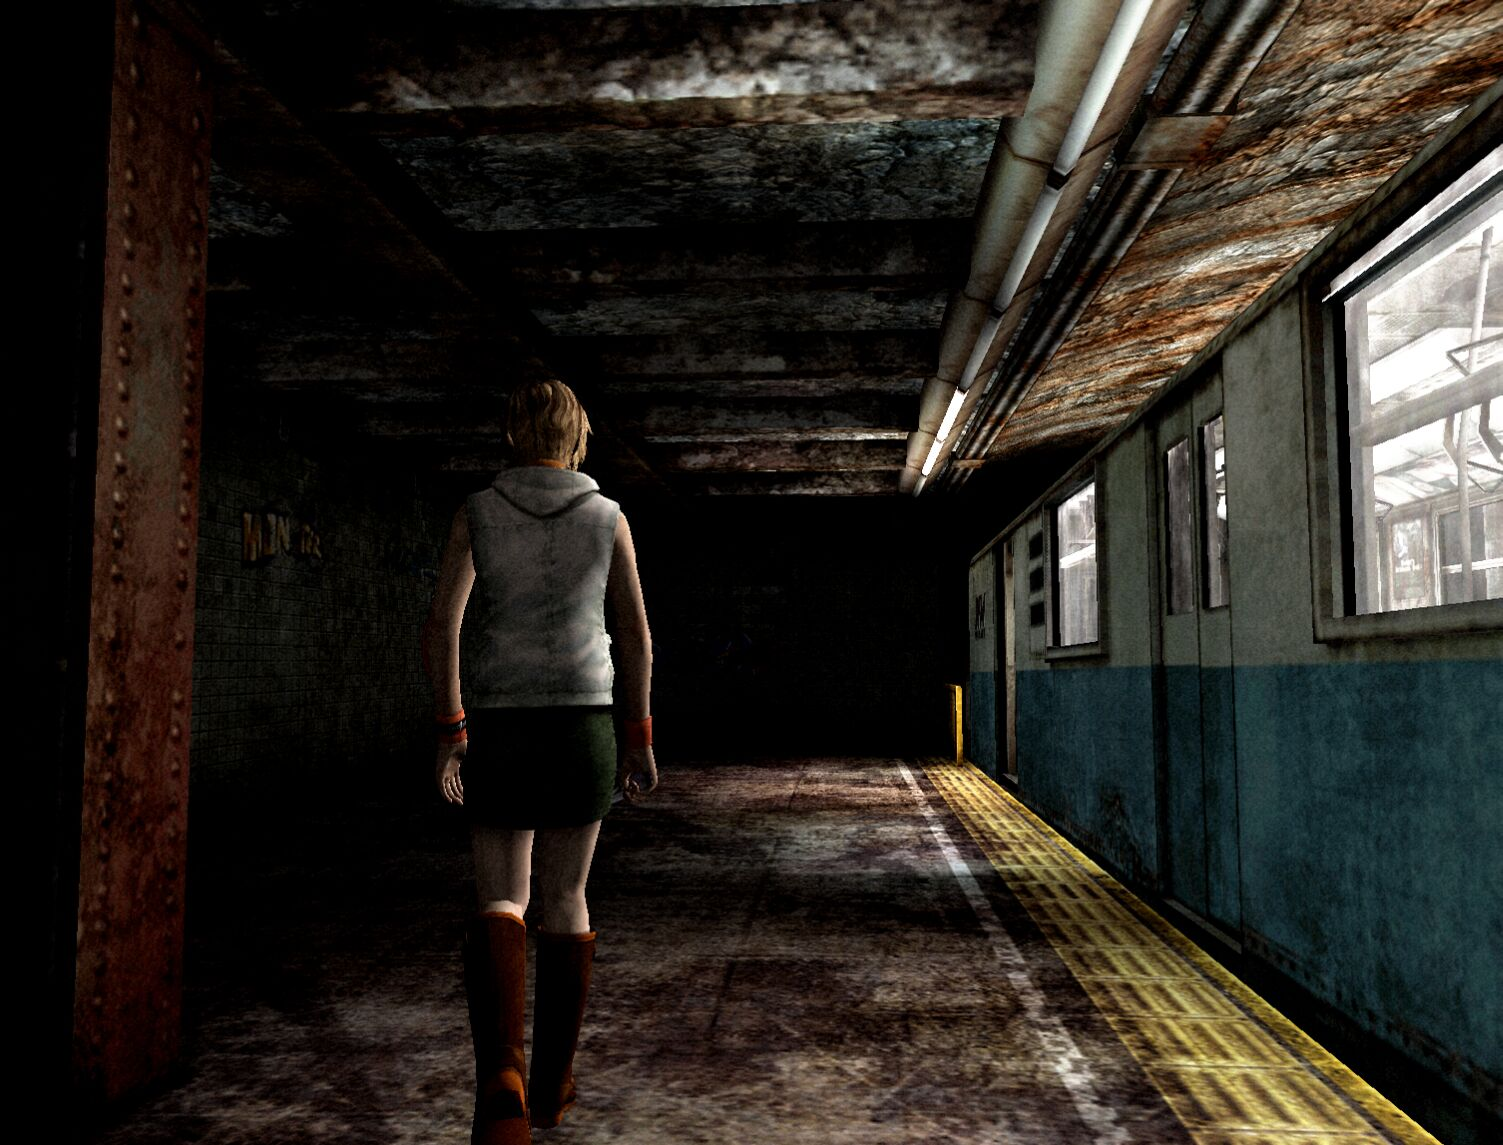 Silent Hill 3 Subway Map